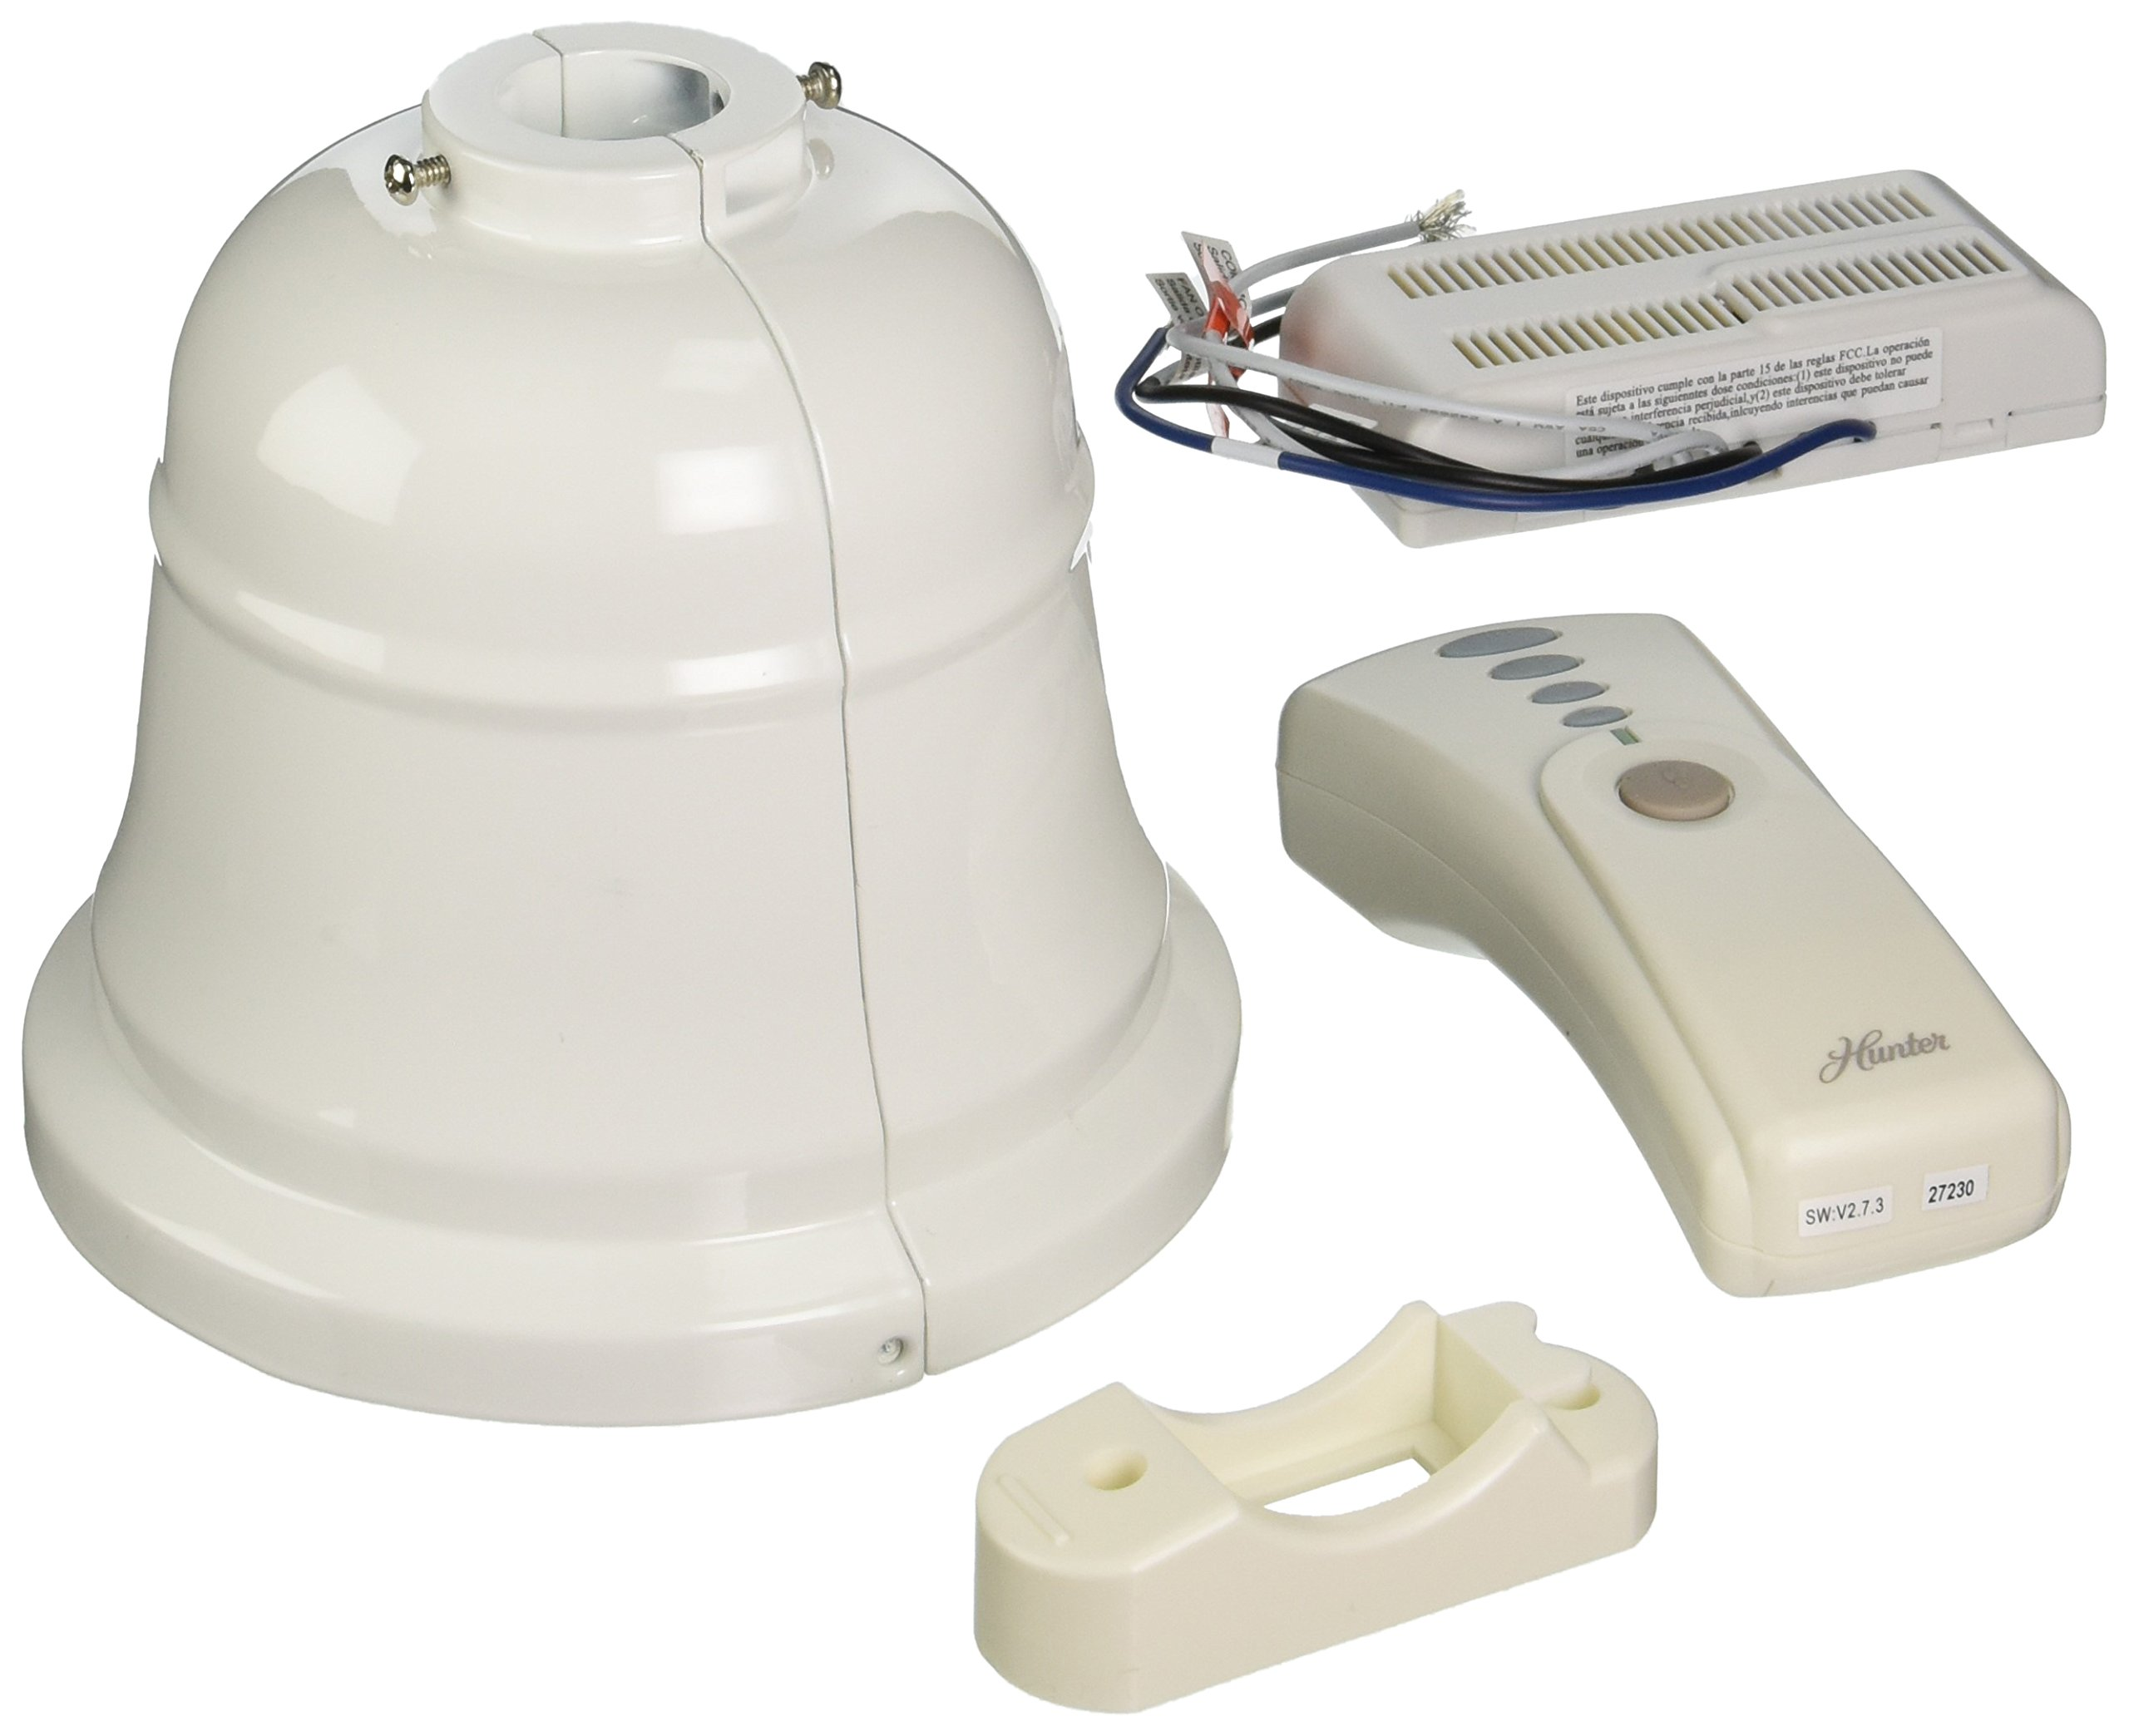 Hunter 99179 Original Control and Canopy Accessory Kit, White